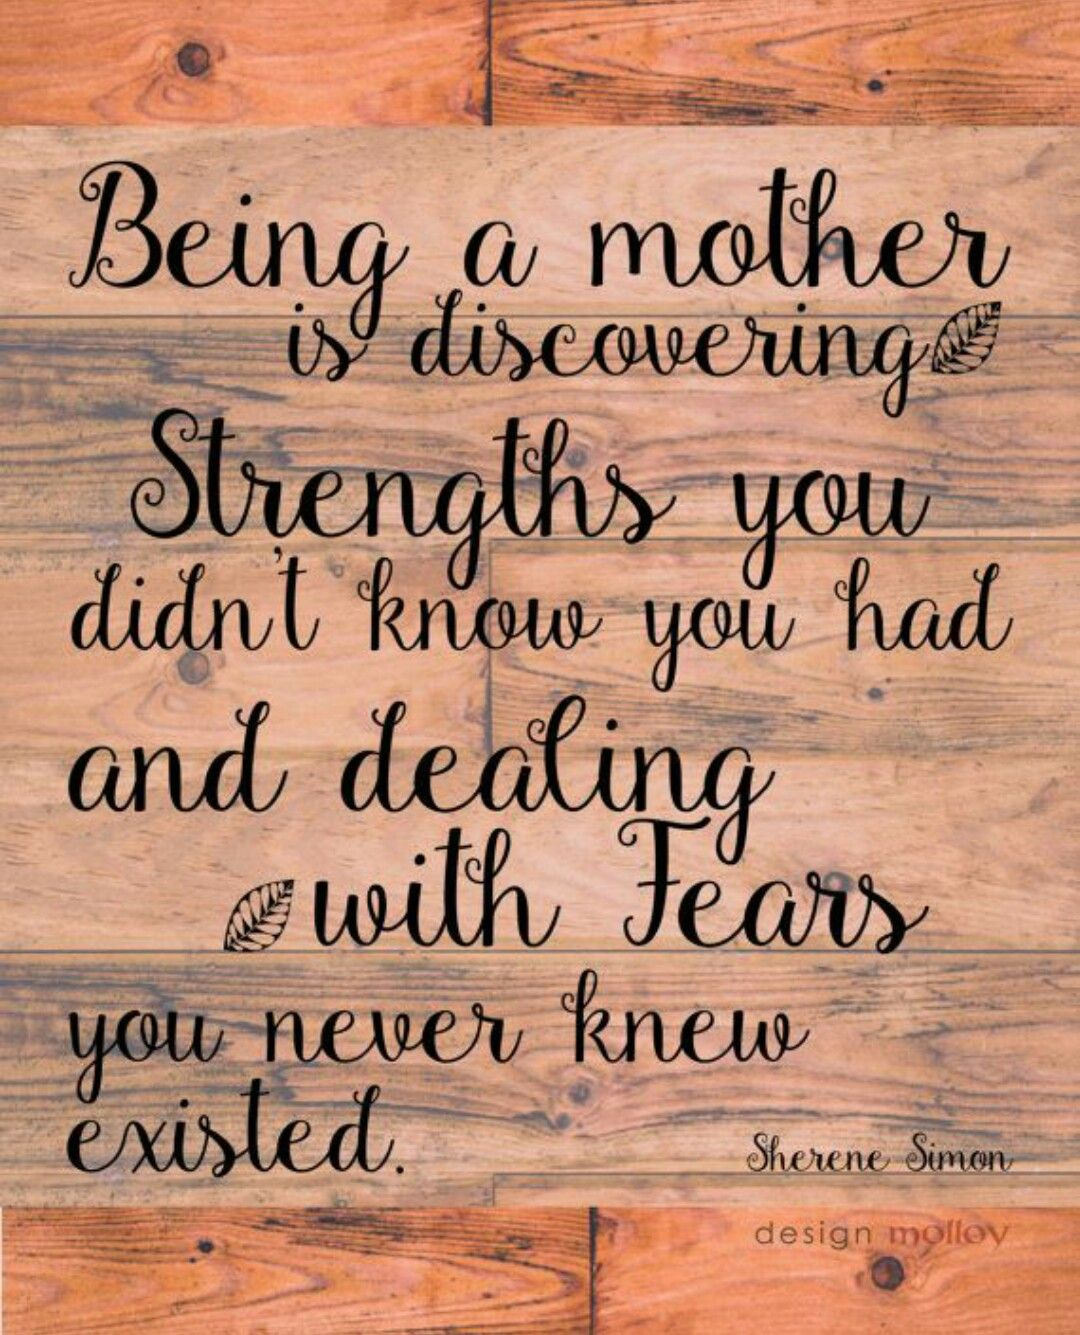 Inspirational Quotes For Mothers Pinjane Patat On Parenting Ideas  Pinterest  Proverbs 31